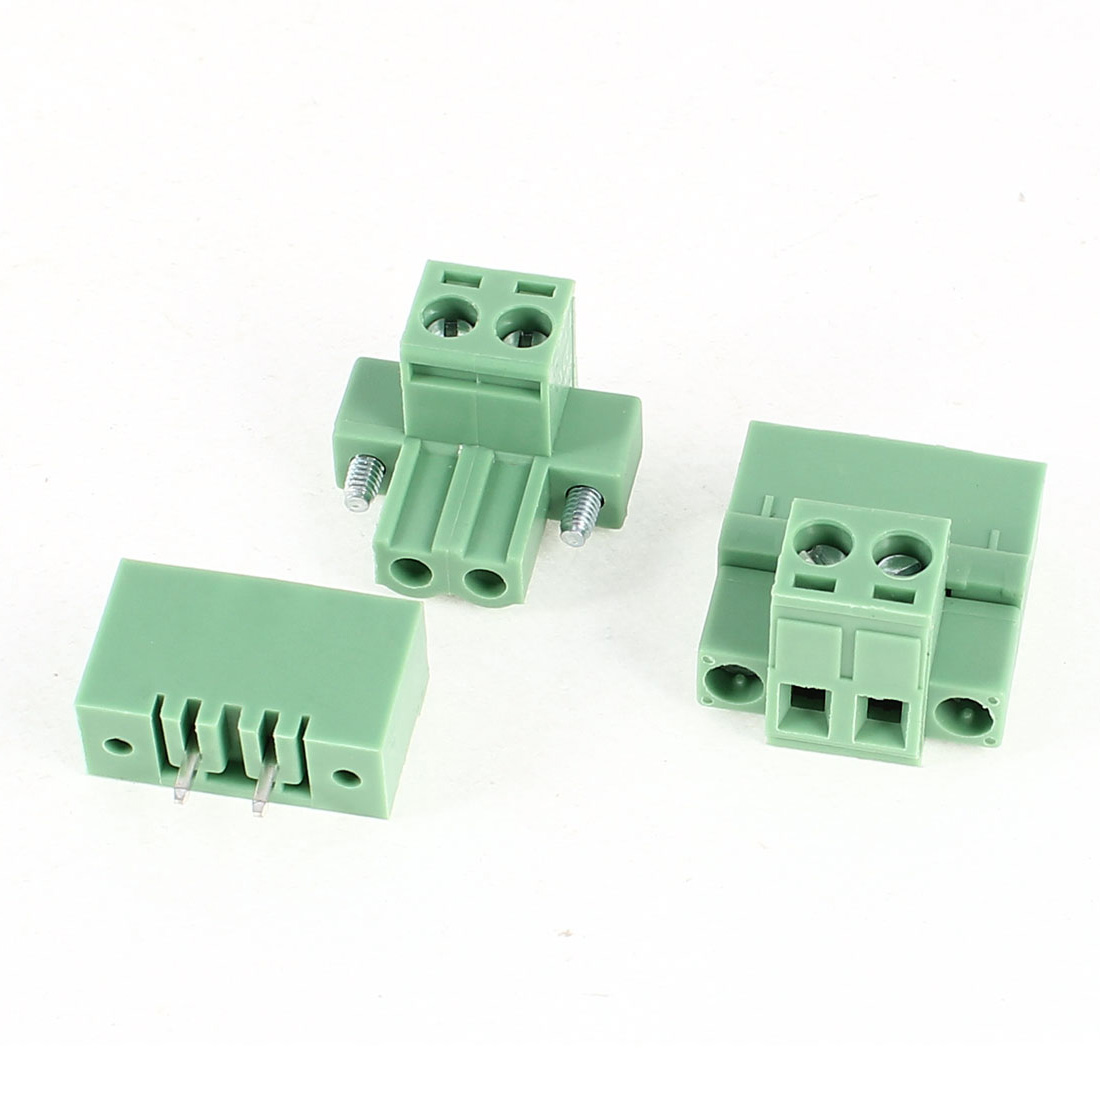 2Pcs 2EDG5.08-2P 5.08mm Pitch 2 Straight Pins Female and Male Wire Pluggable Flanged Terminal Barrier Strip Block Connector 300V 10A